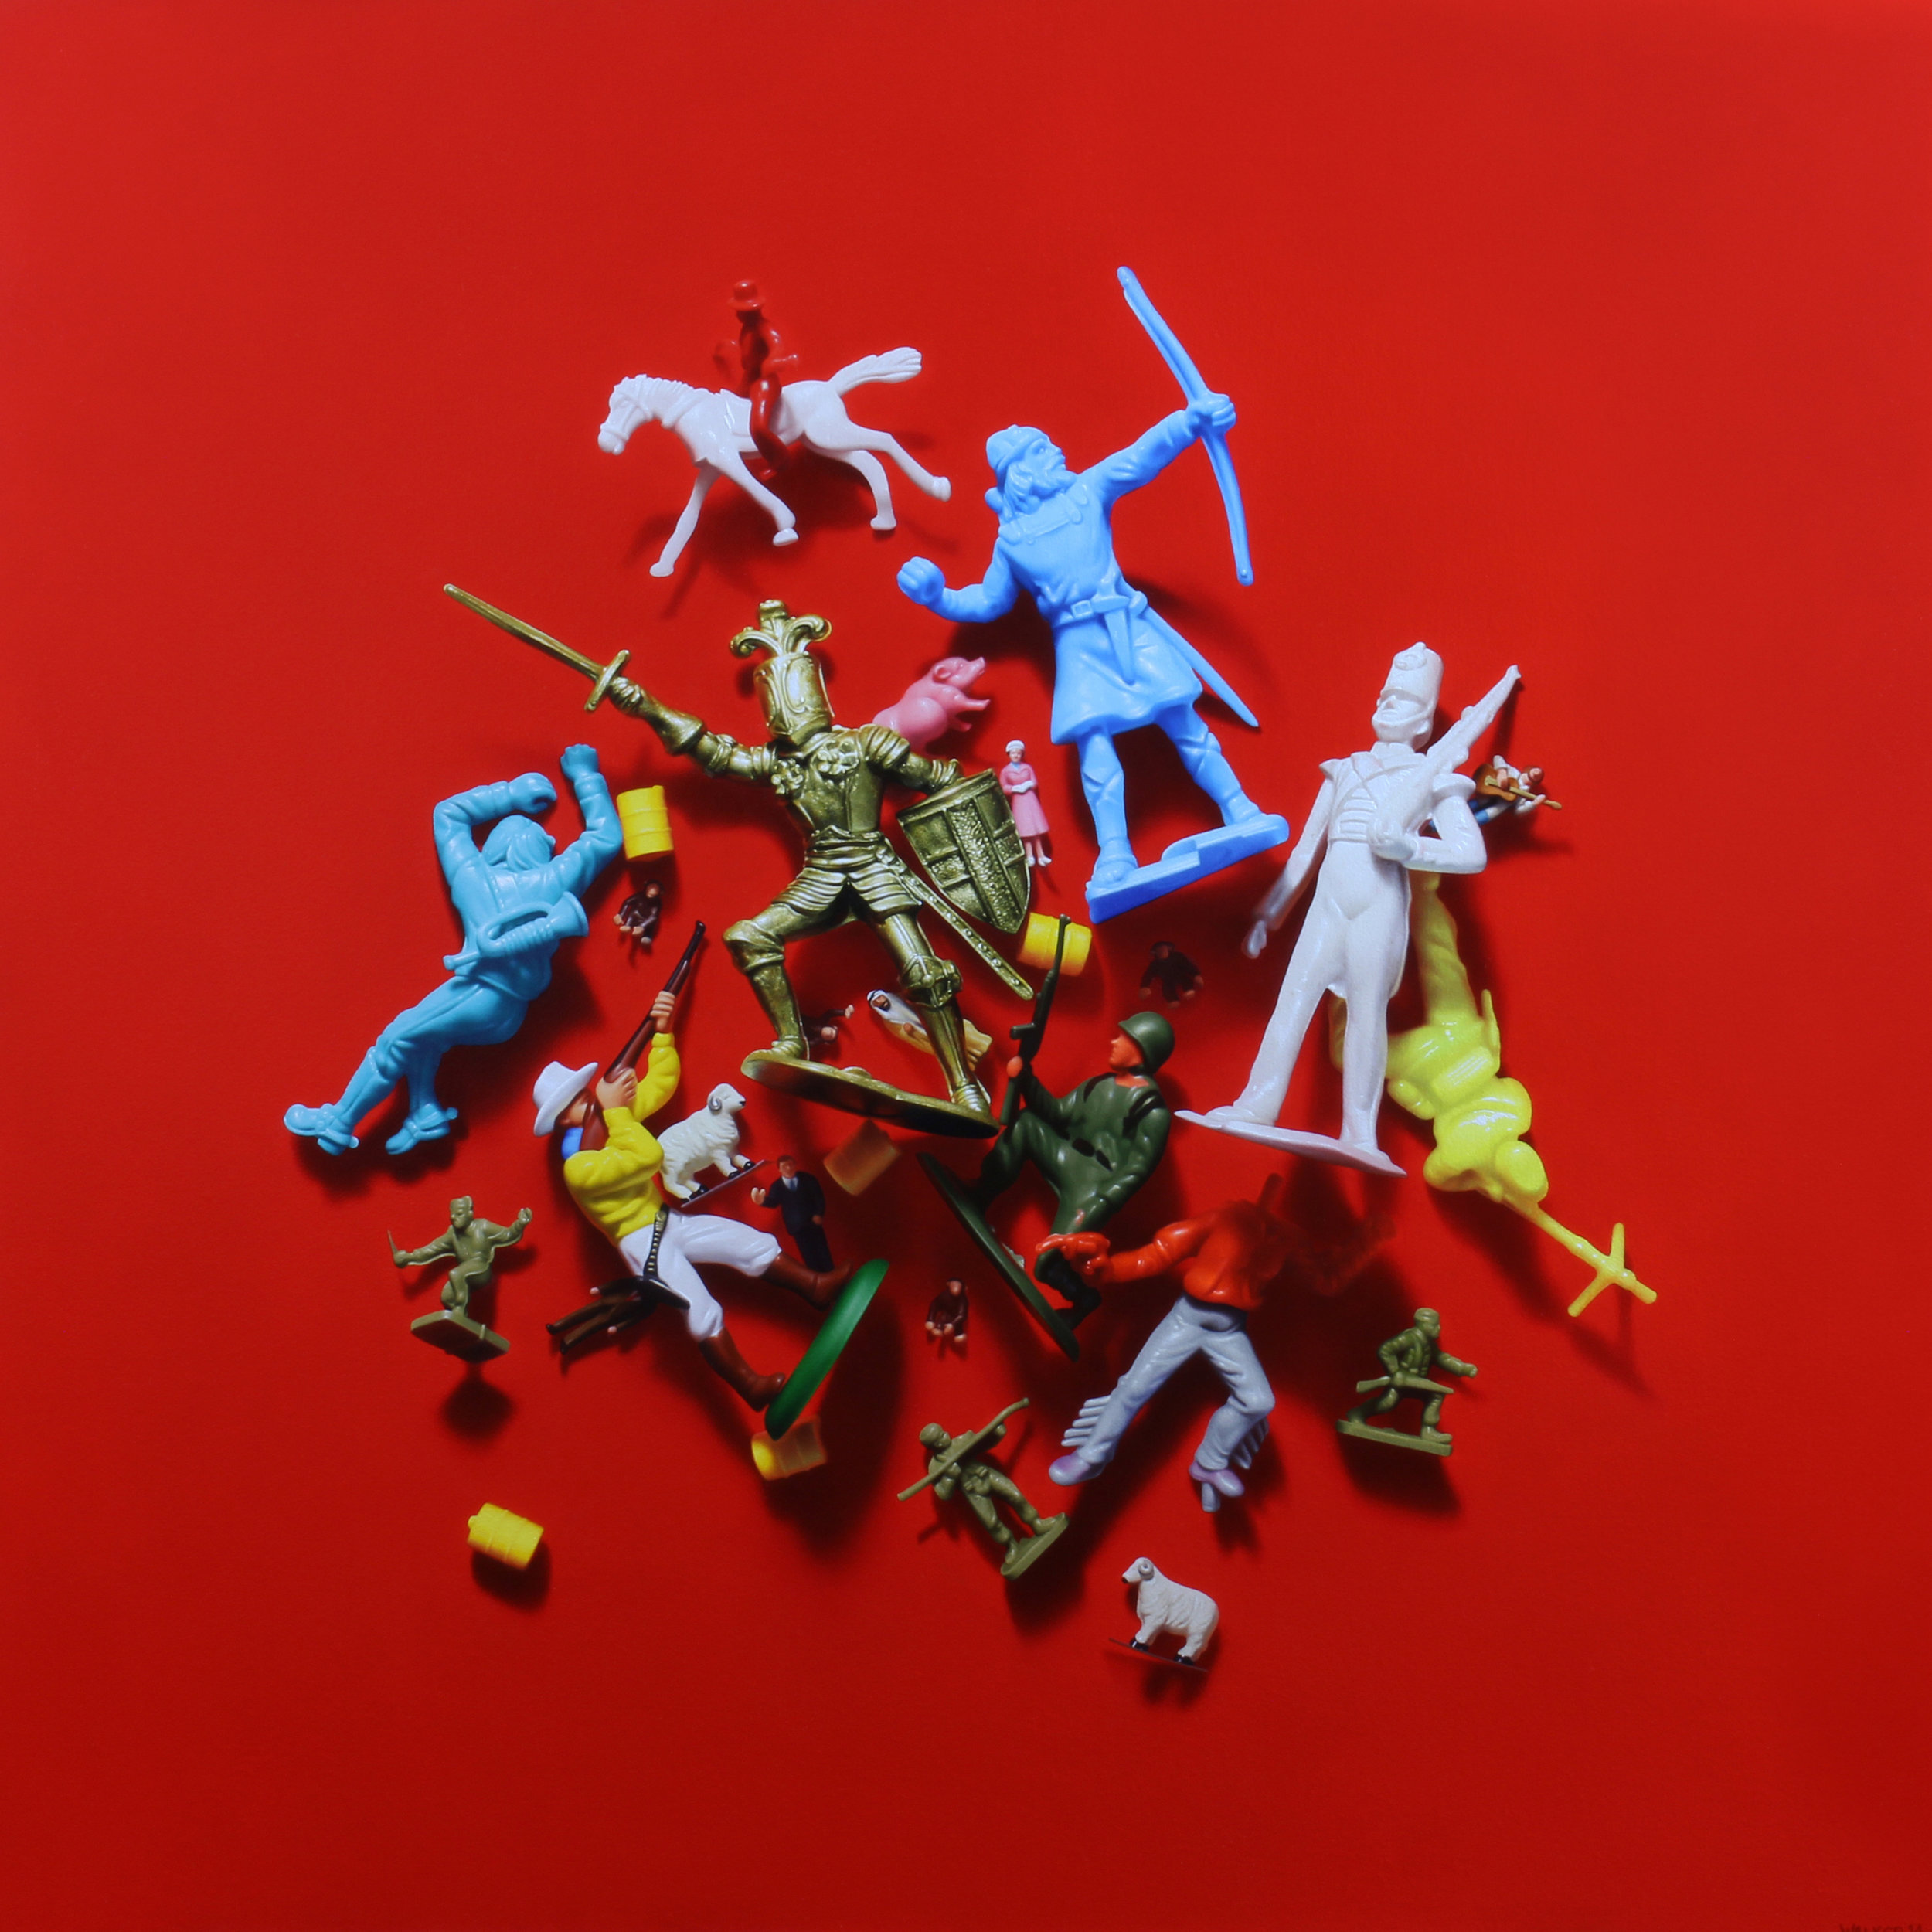 Toy Pile. Oil on canvas.